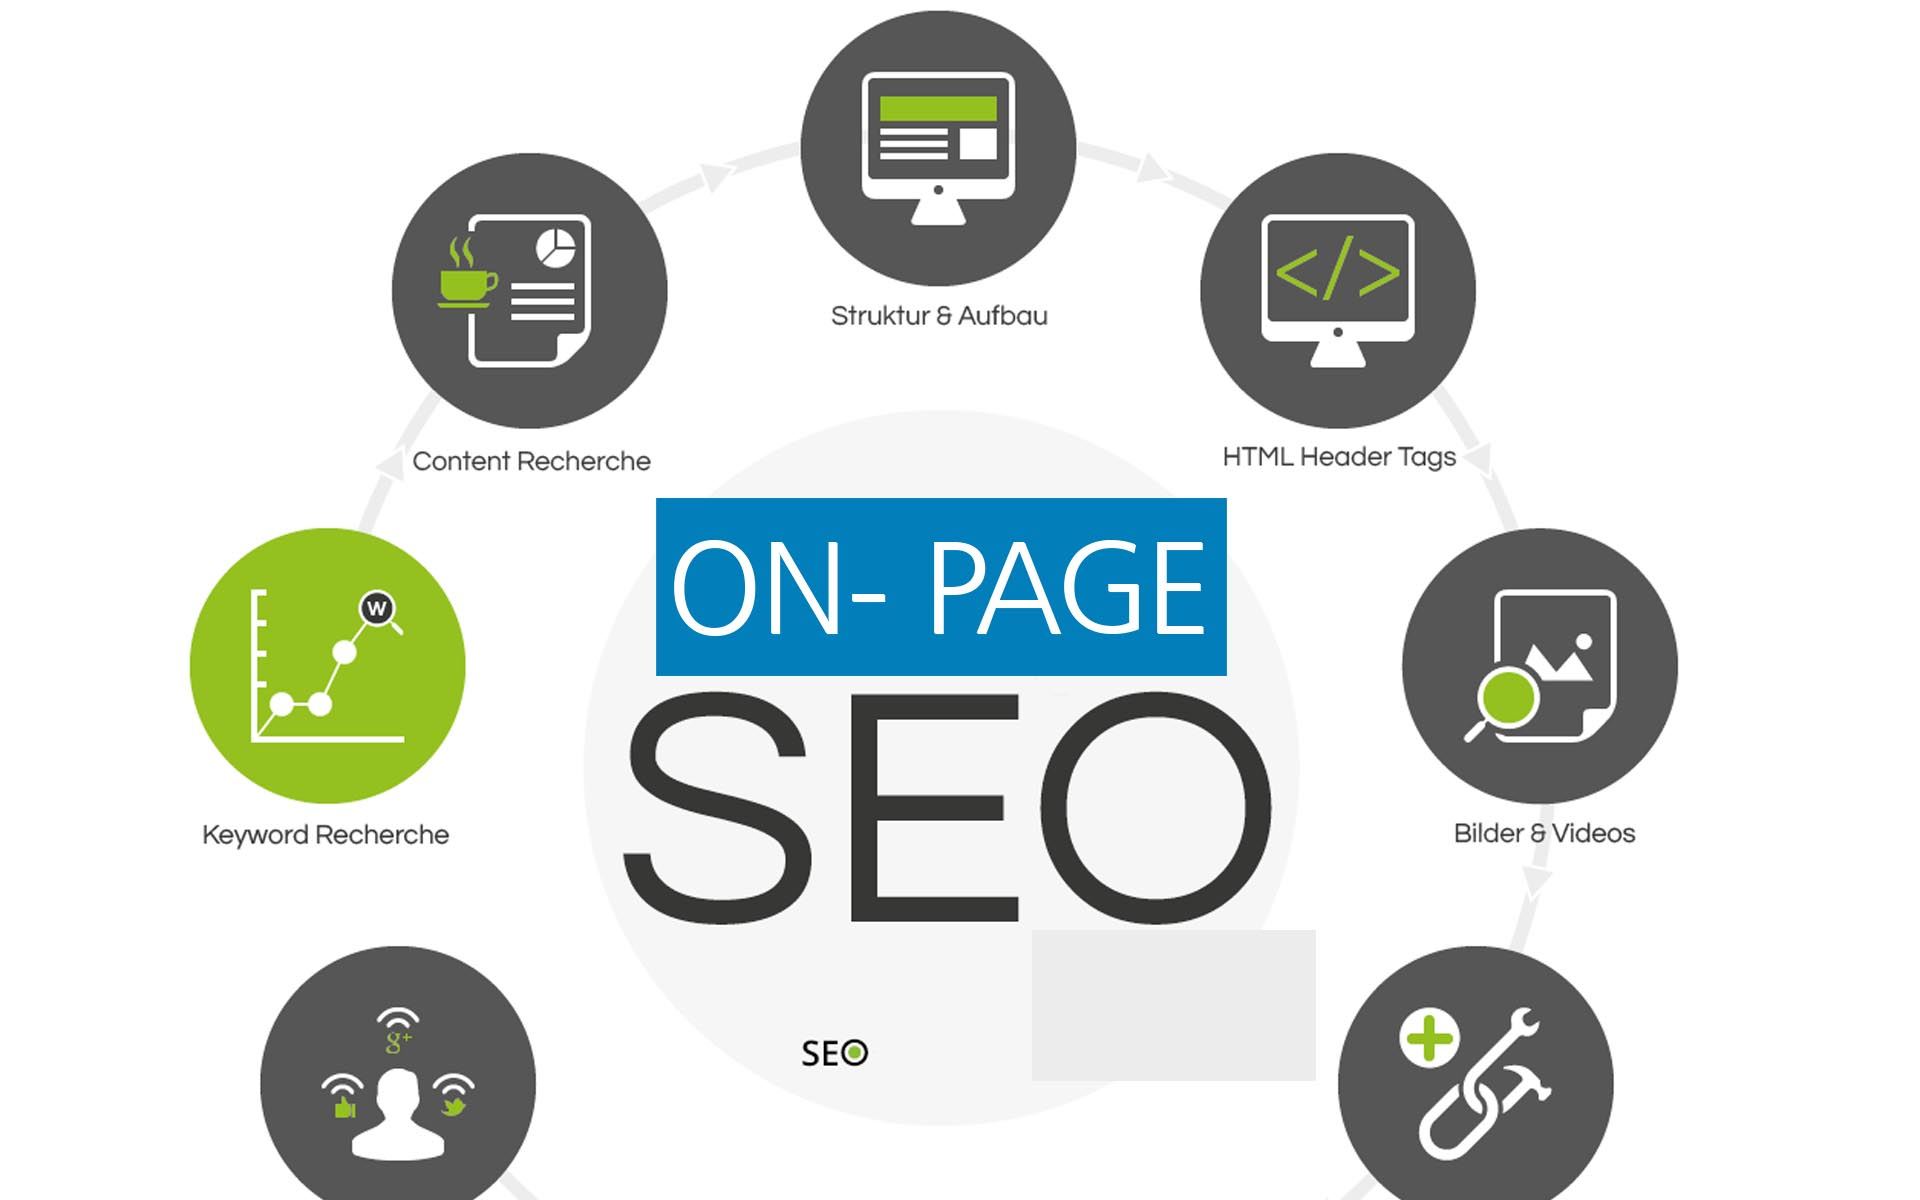 ON page SEO for Organic result